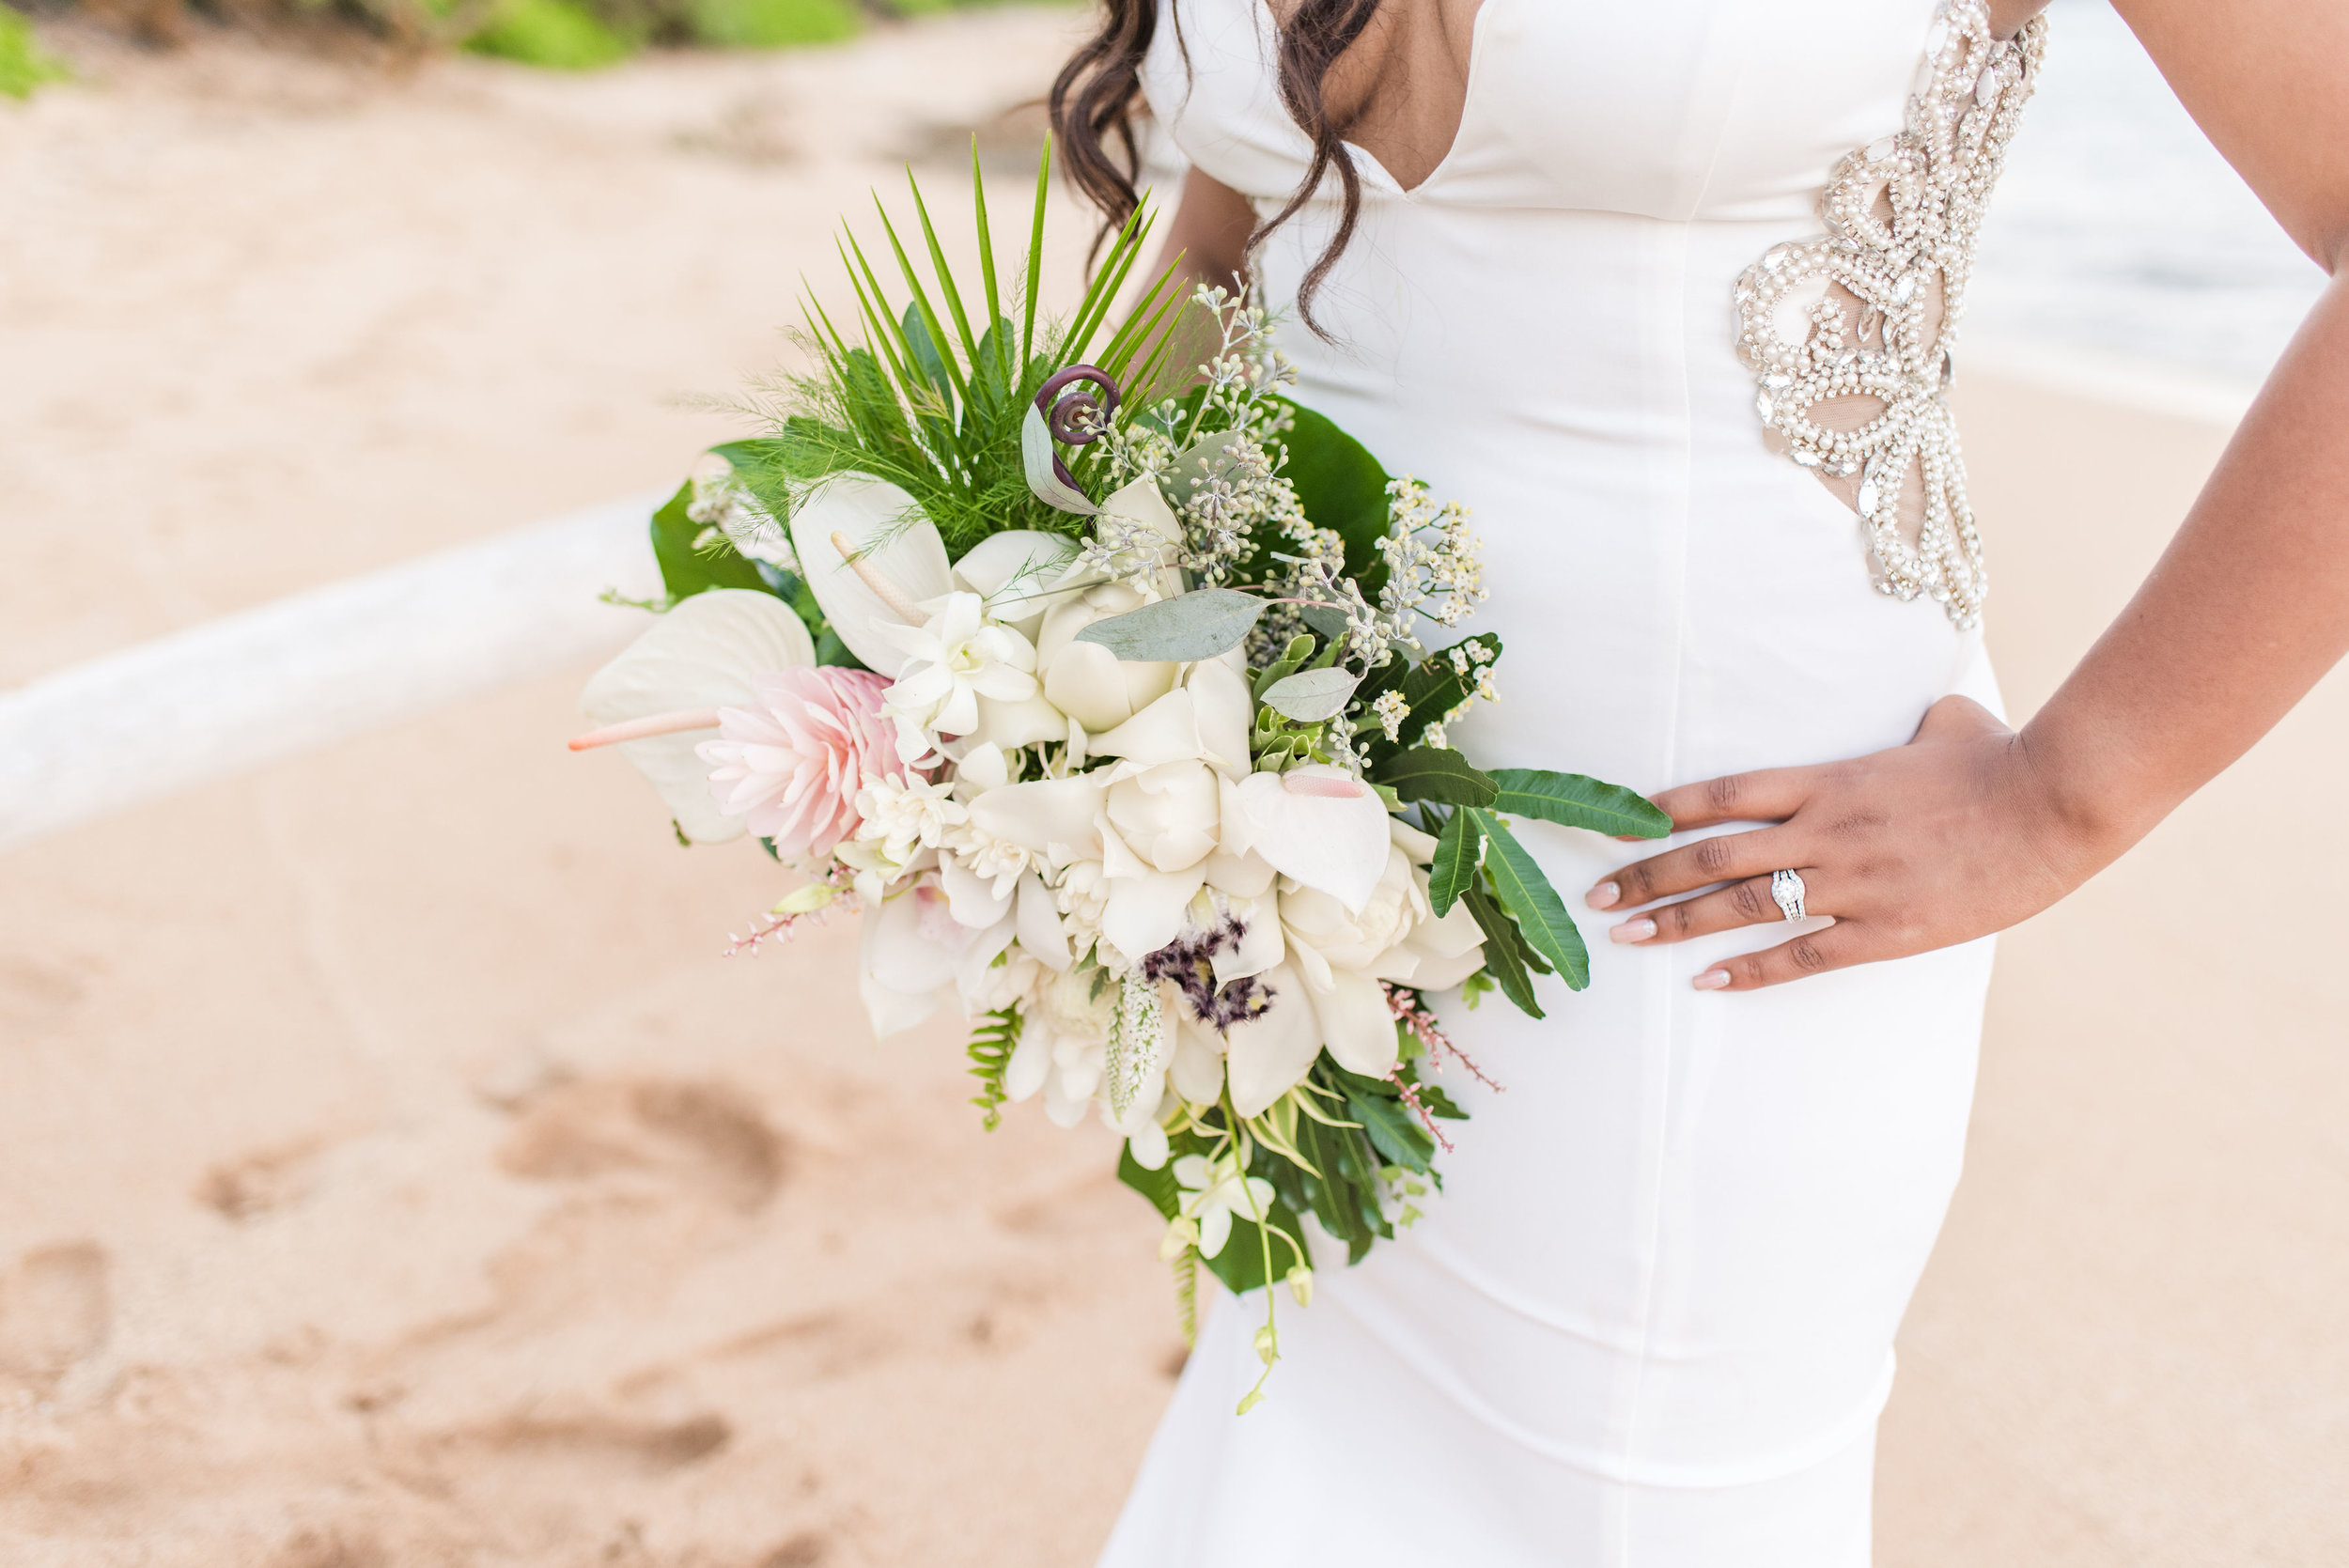 Kealoha Flowers - Arch rentals, candles, bouquets, flower crowns, leis, boutonnieres, centerpieces, hair flowers, cake flowers.